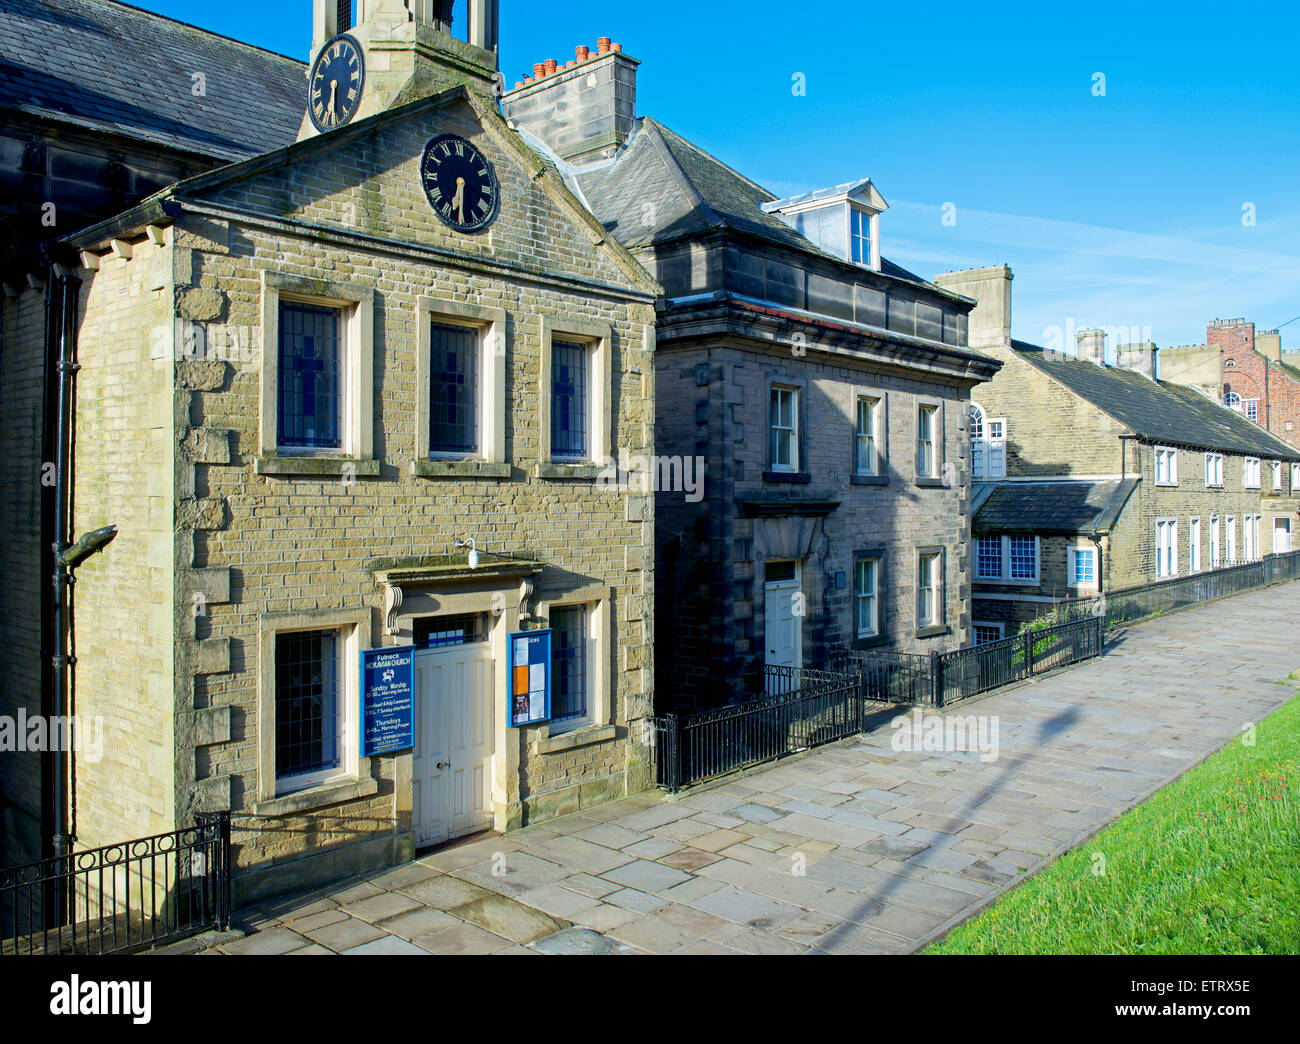 Fulneck Moravian Church and Settlement, Pudsey, Leeds, West Yorkshire, England UK - Stock Image